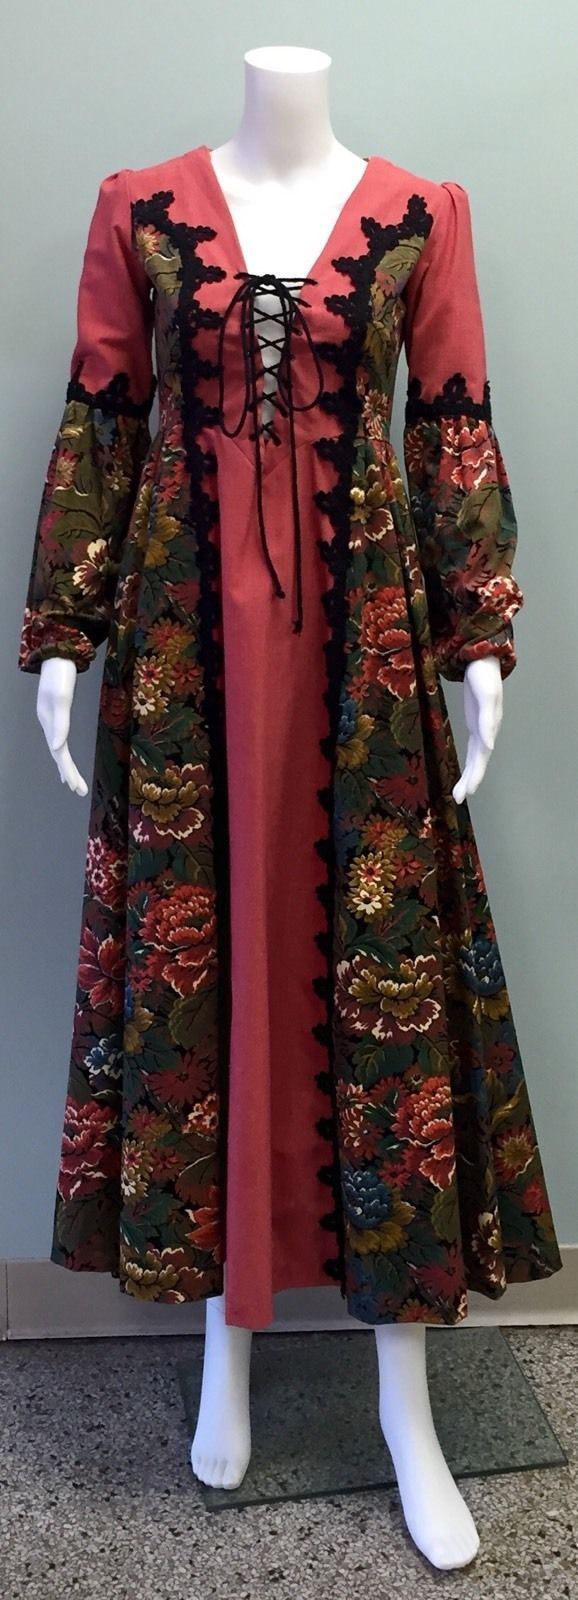 Gunne Sax Jessica McClintock Black Label Renaissance Tapestry Gown and Cape | eBay